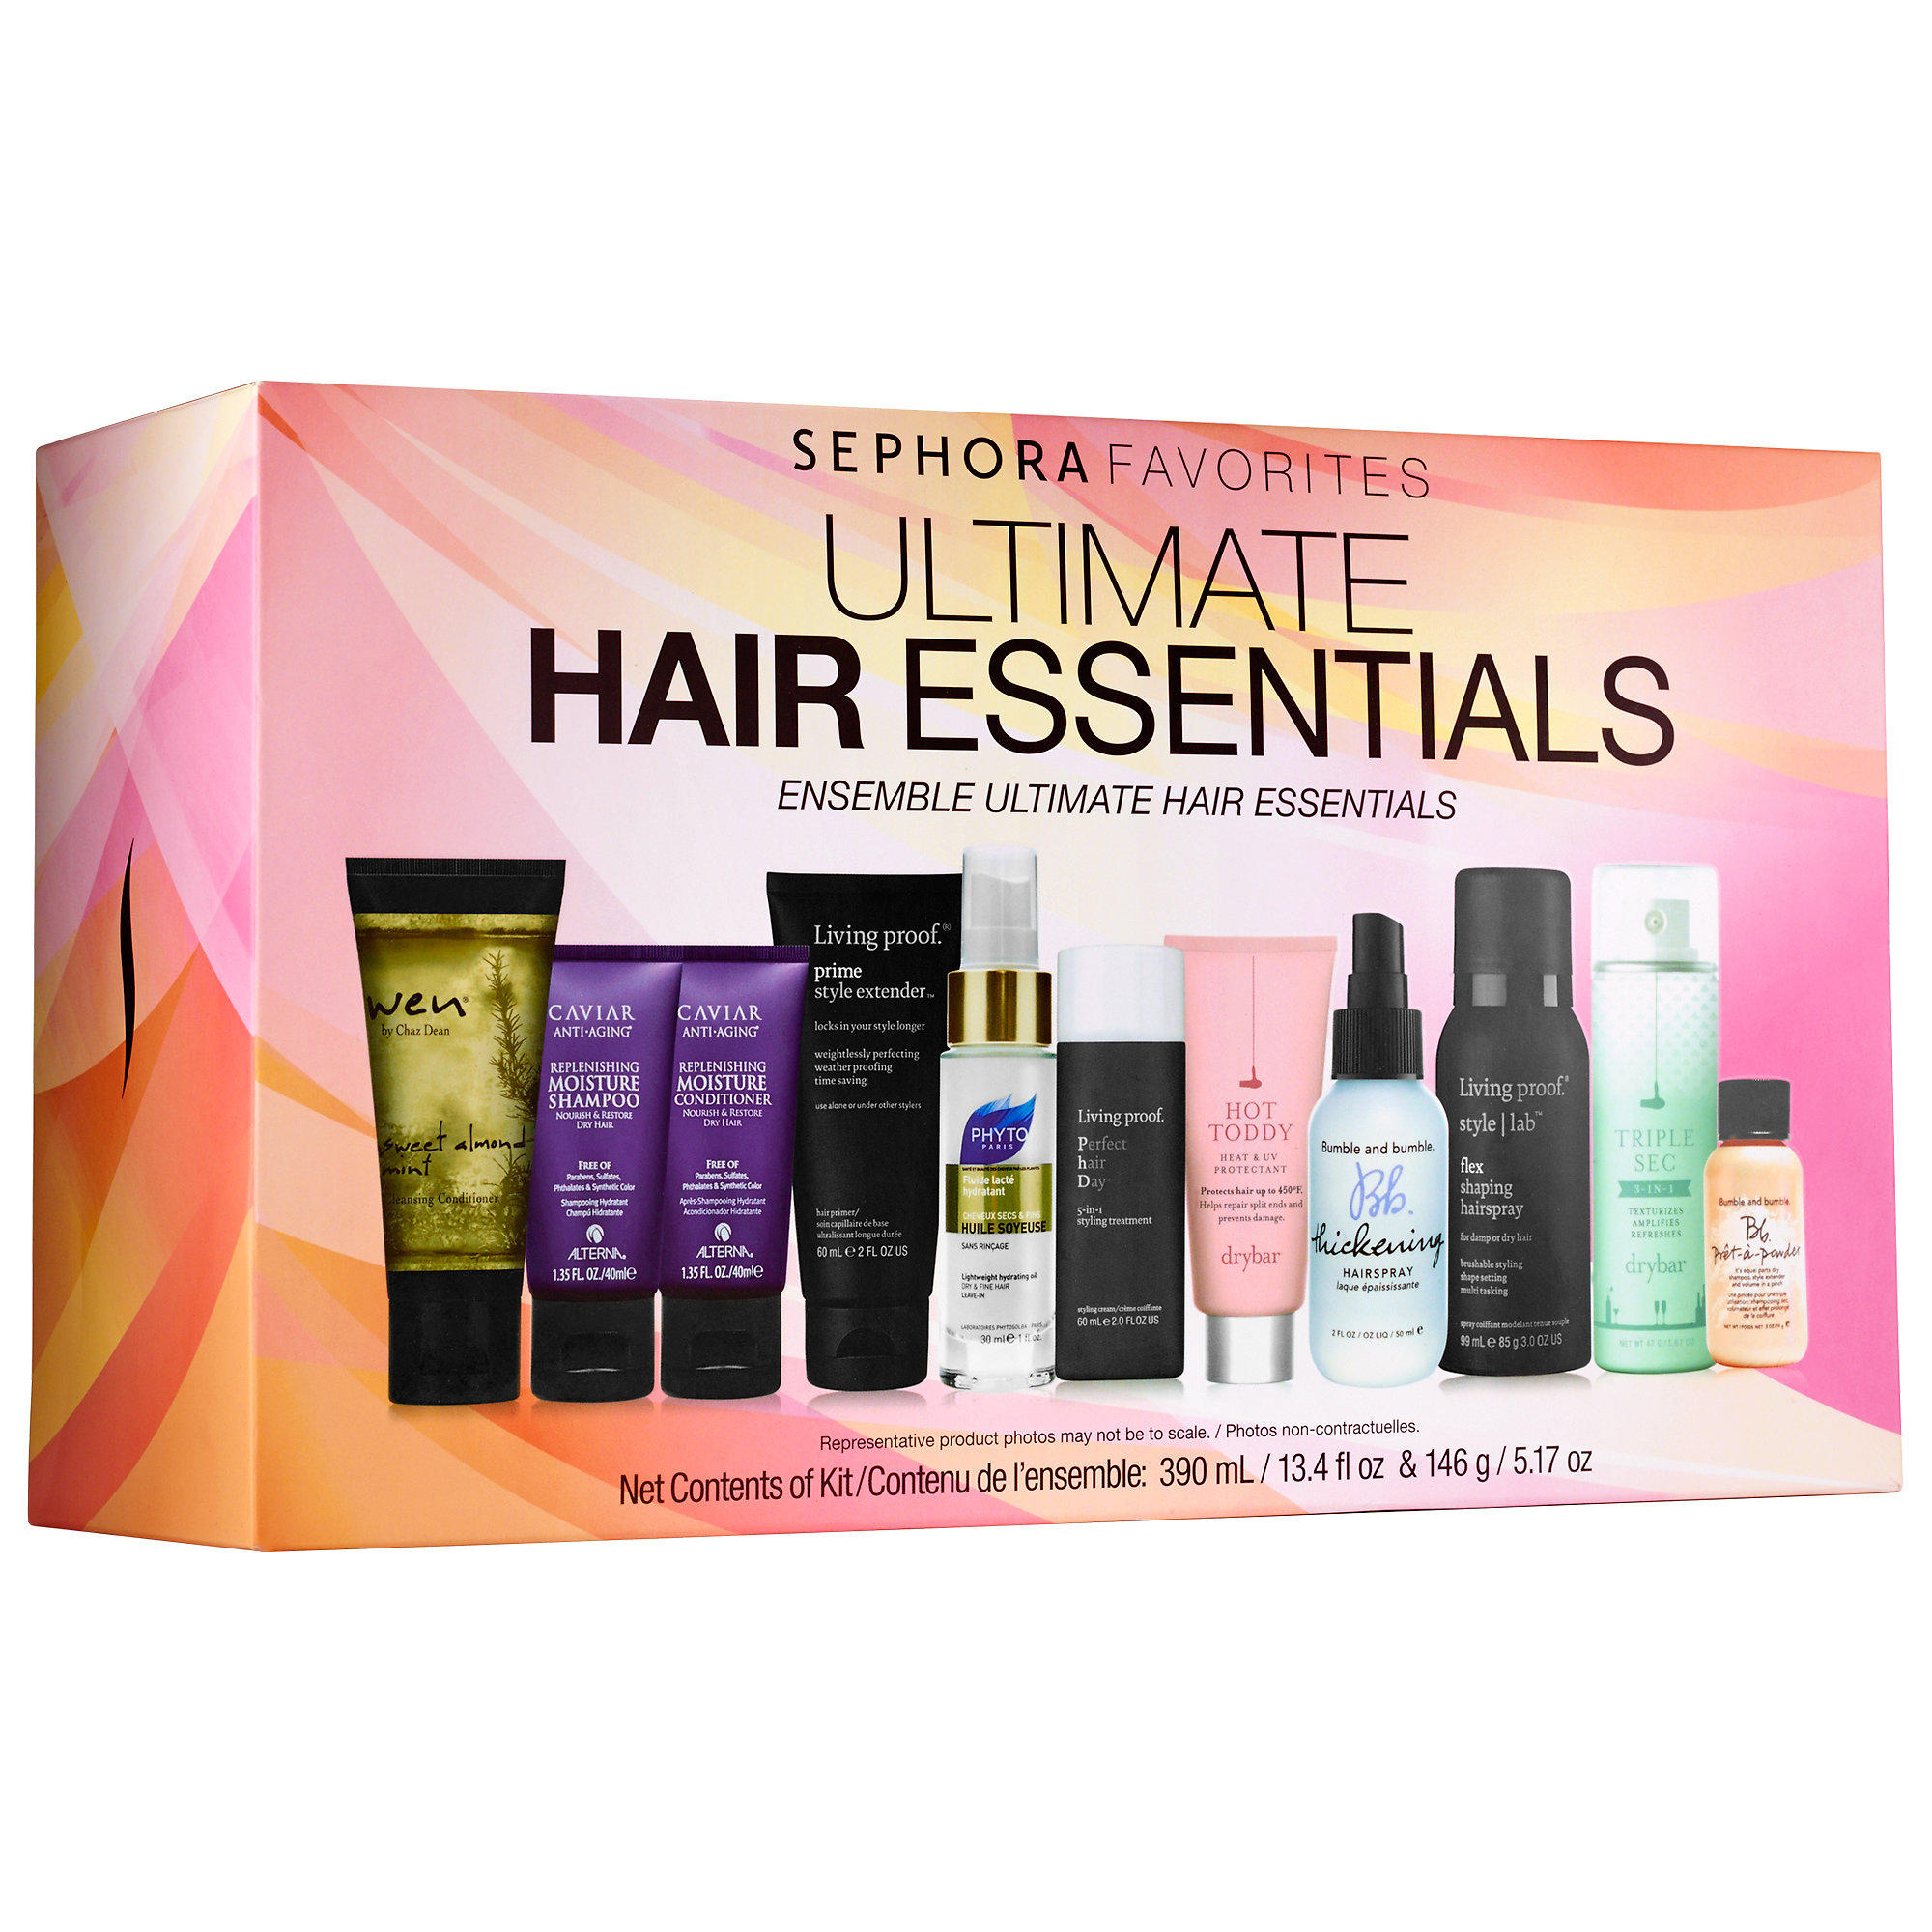 Sephora launched New Sephora Favorites Ultimate Hair Essentials Set